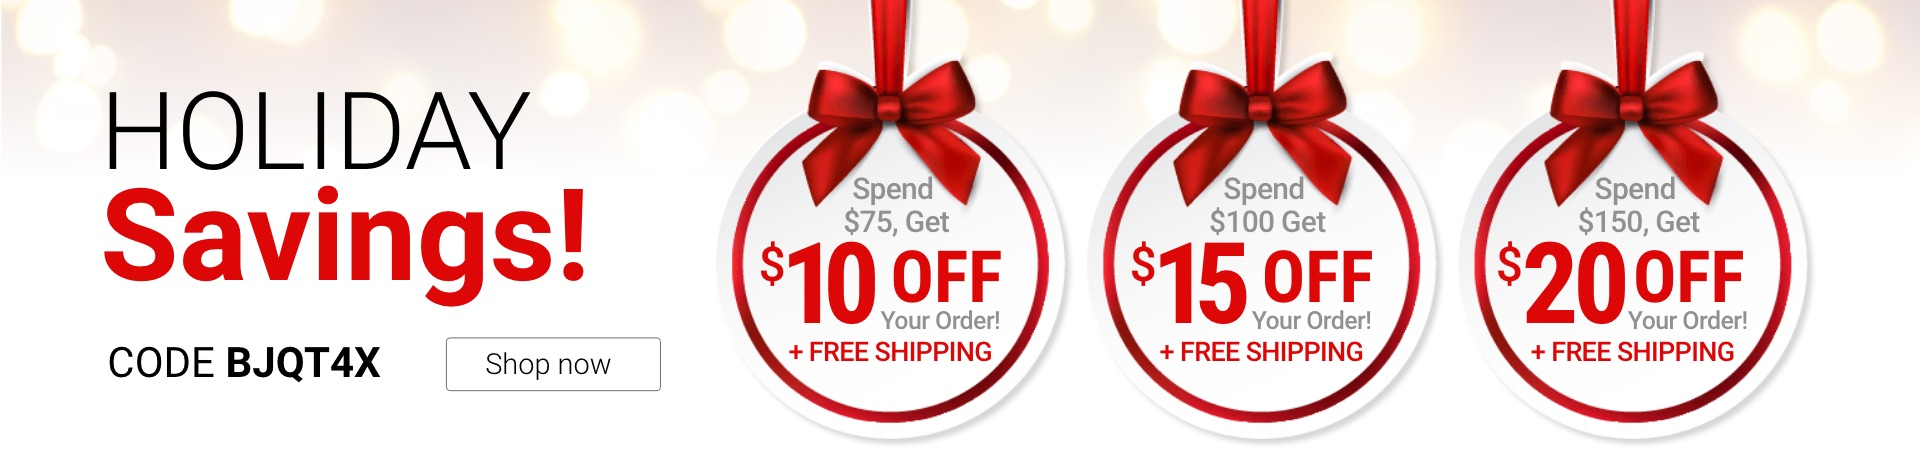 Holiday Savings. Spend $75 get $10 off, spend $100 get $15 off, spend $150 get $20 off.  Shop now.